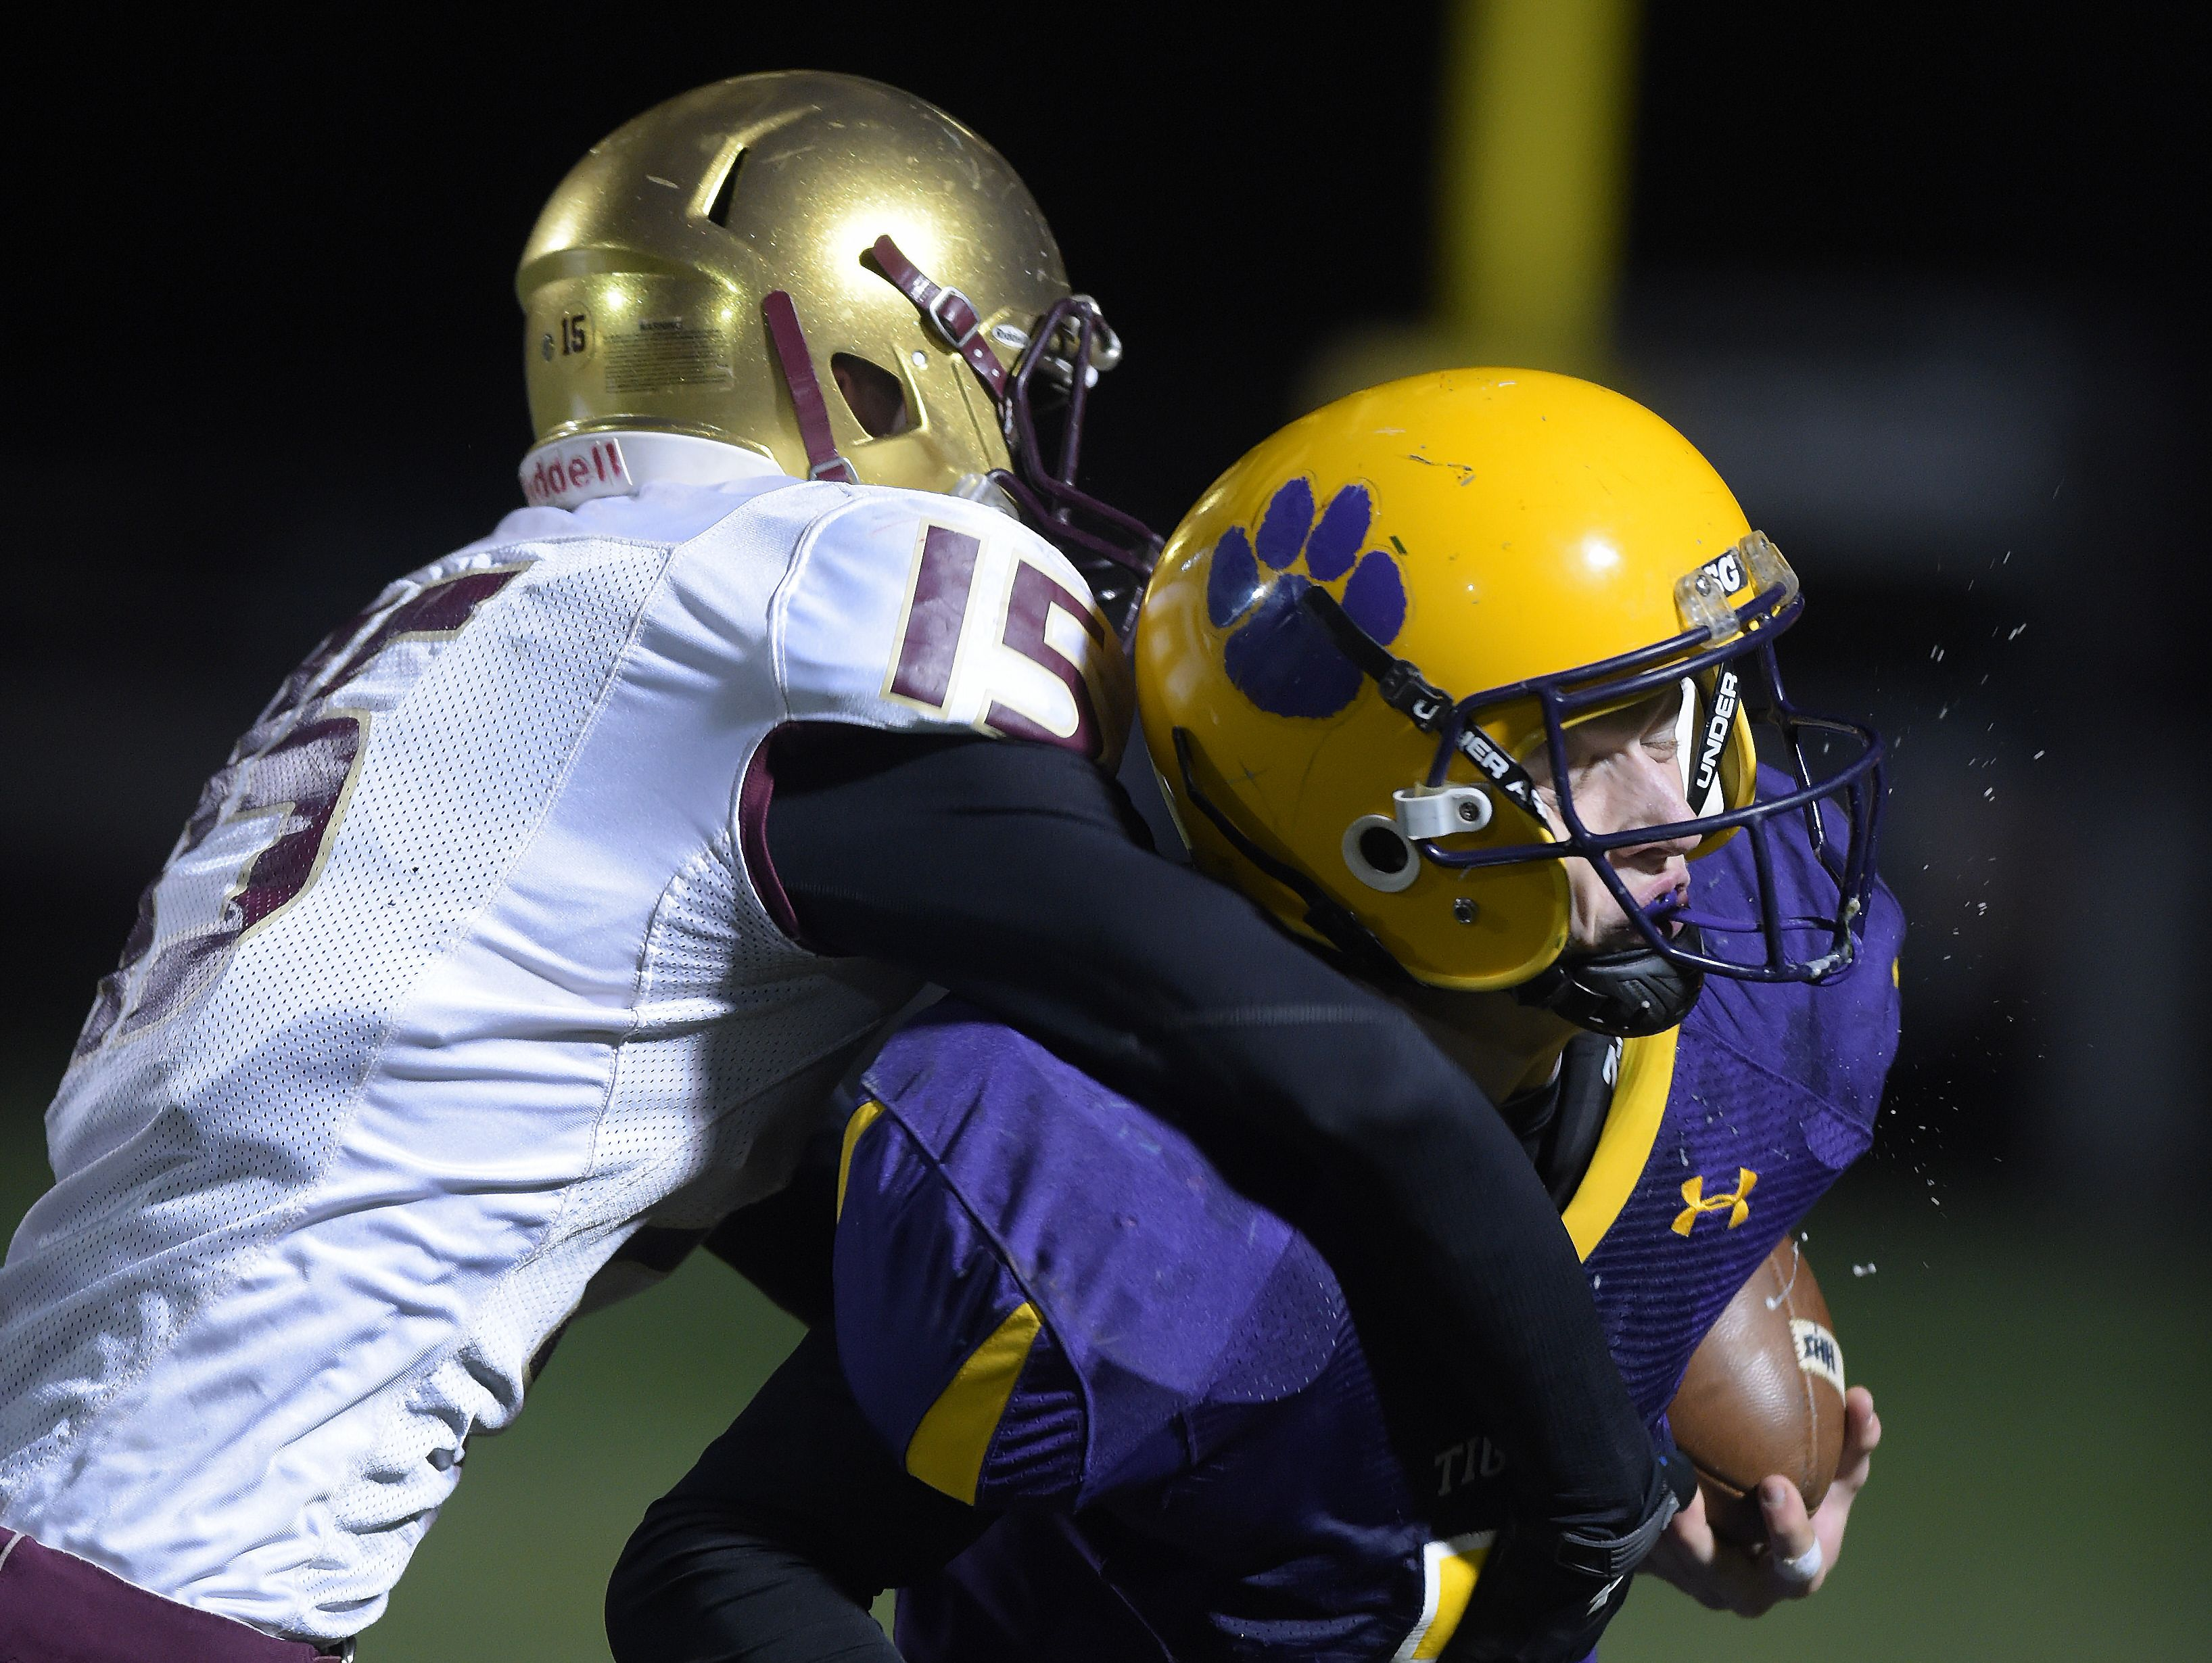 Hagerstown's Owen Golliher is hit by Indianapolis Lutheran's Austin Bryant while running the ball in a sectional football game Friday, Nov. 4, 2016 in Hagerstown.